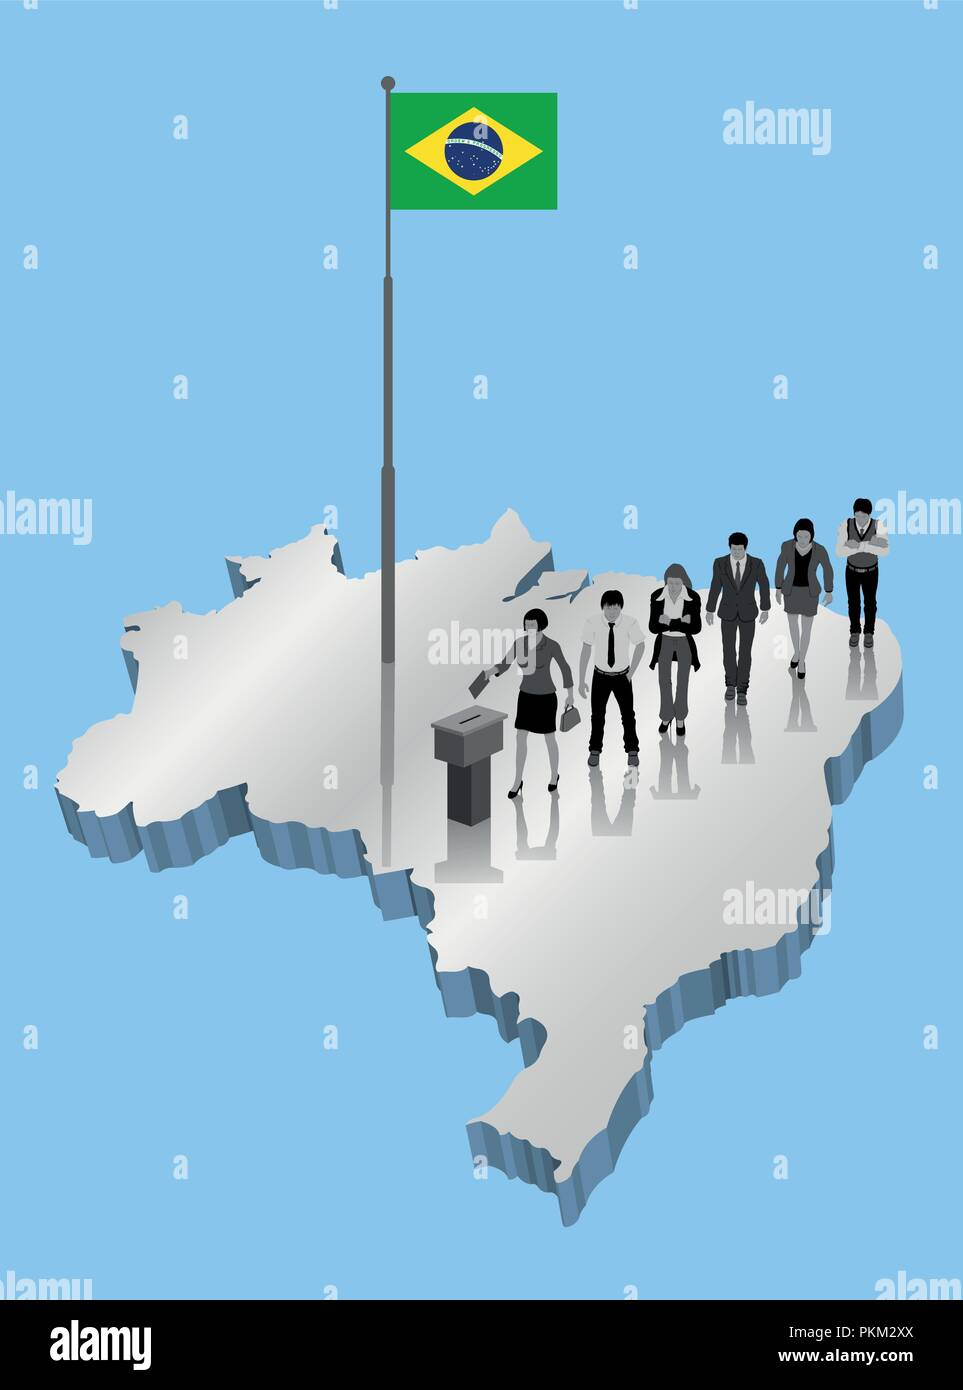 Brazilian citizens voting for Brazil referendum over an 3D map with Flagpole. All the objects, shadows and background are in different layers. - Stock Image